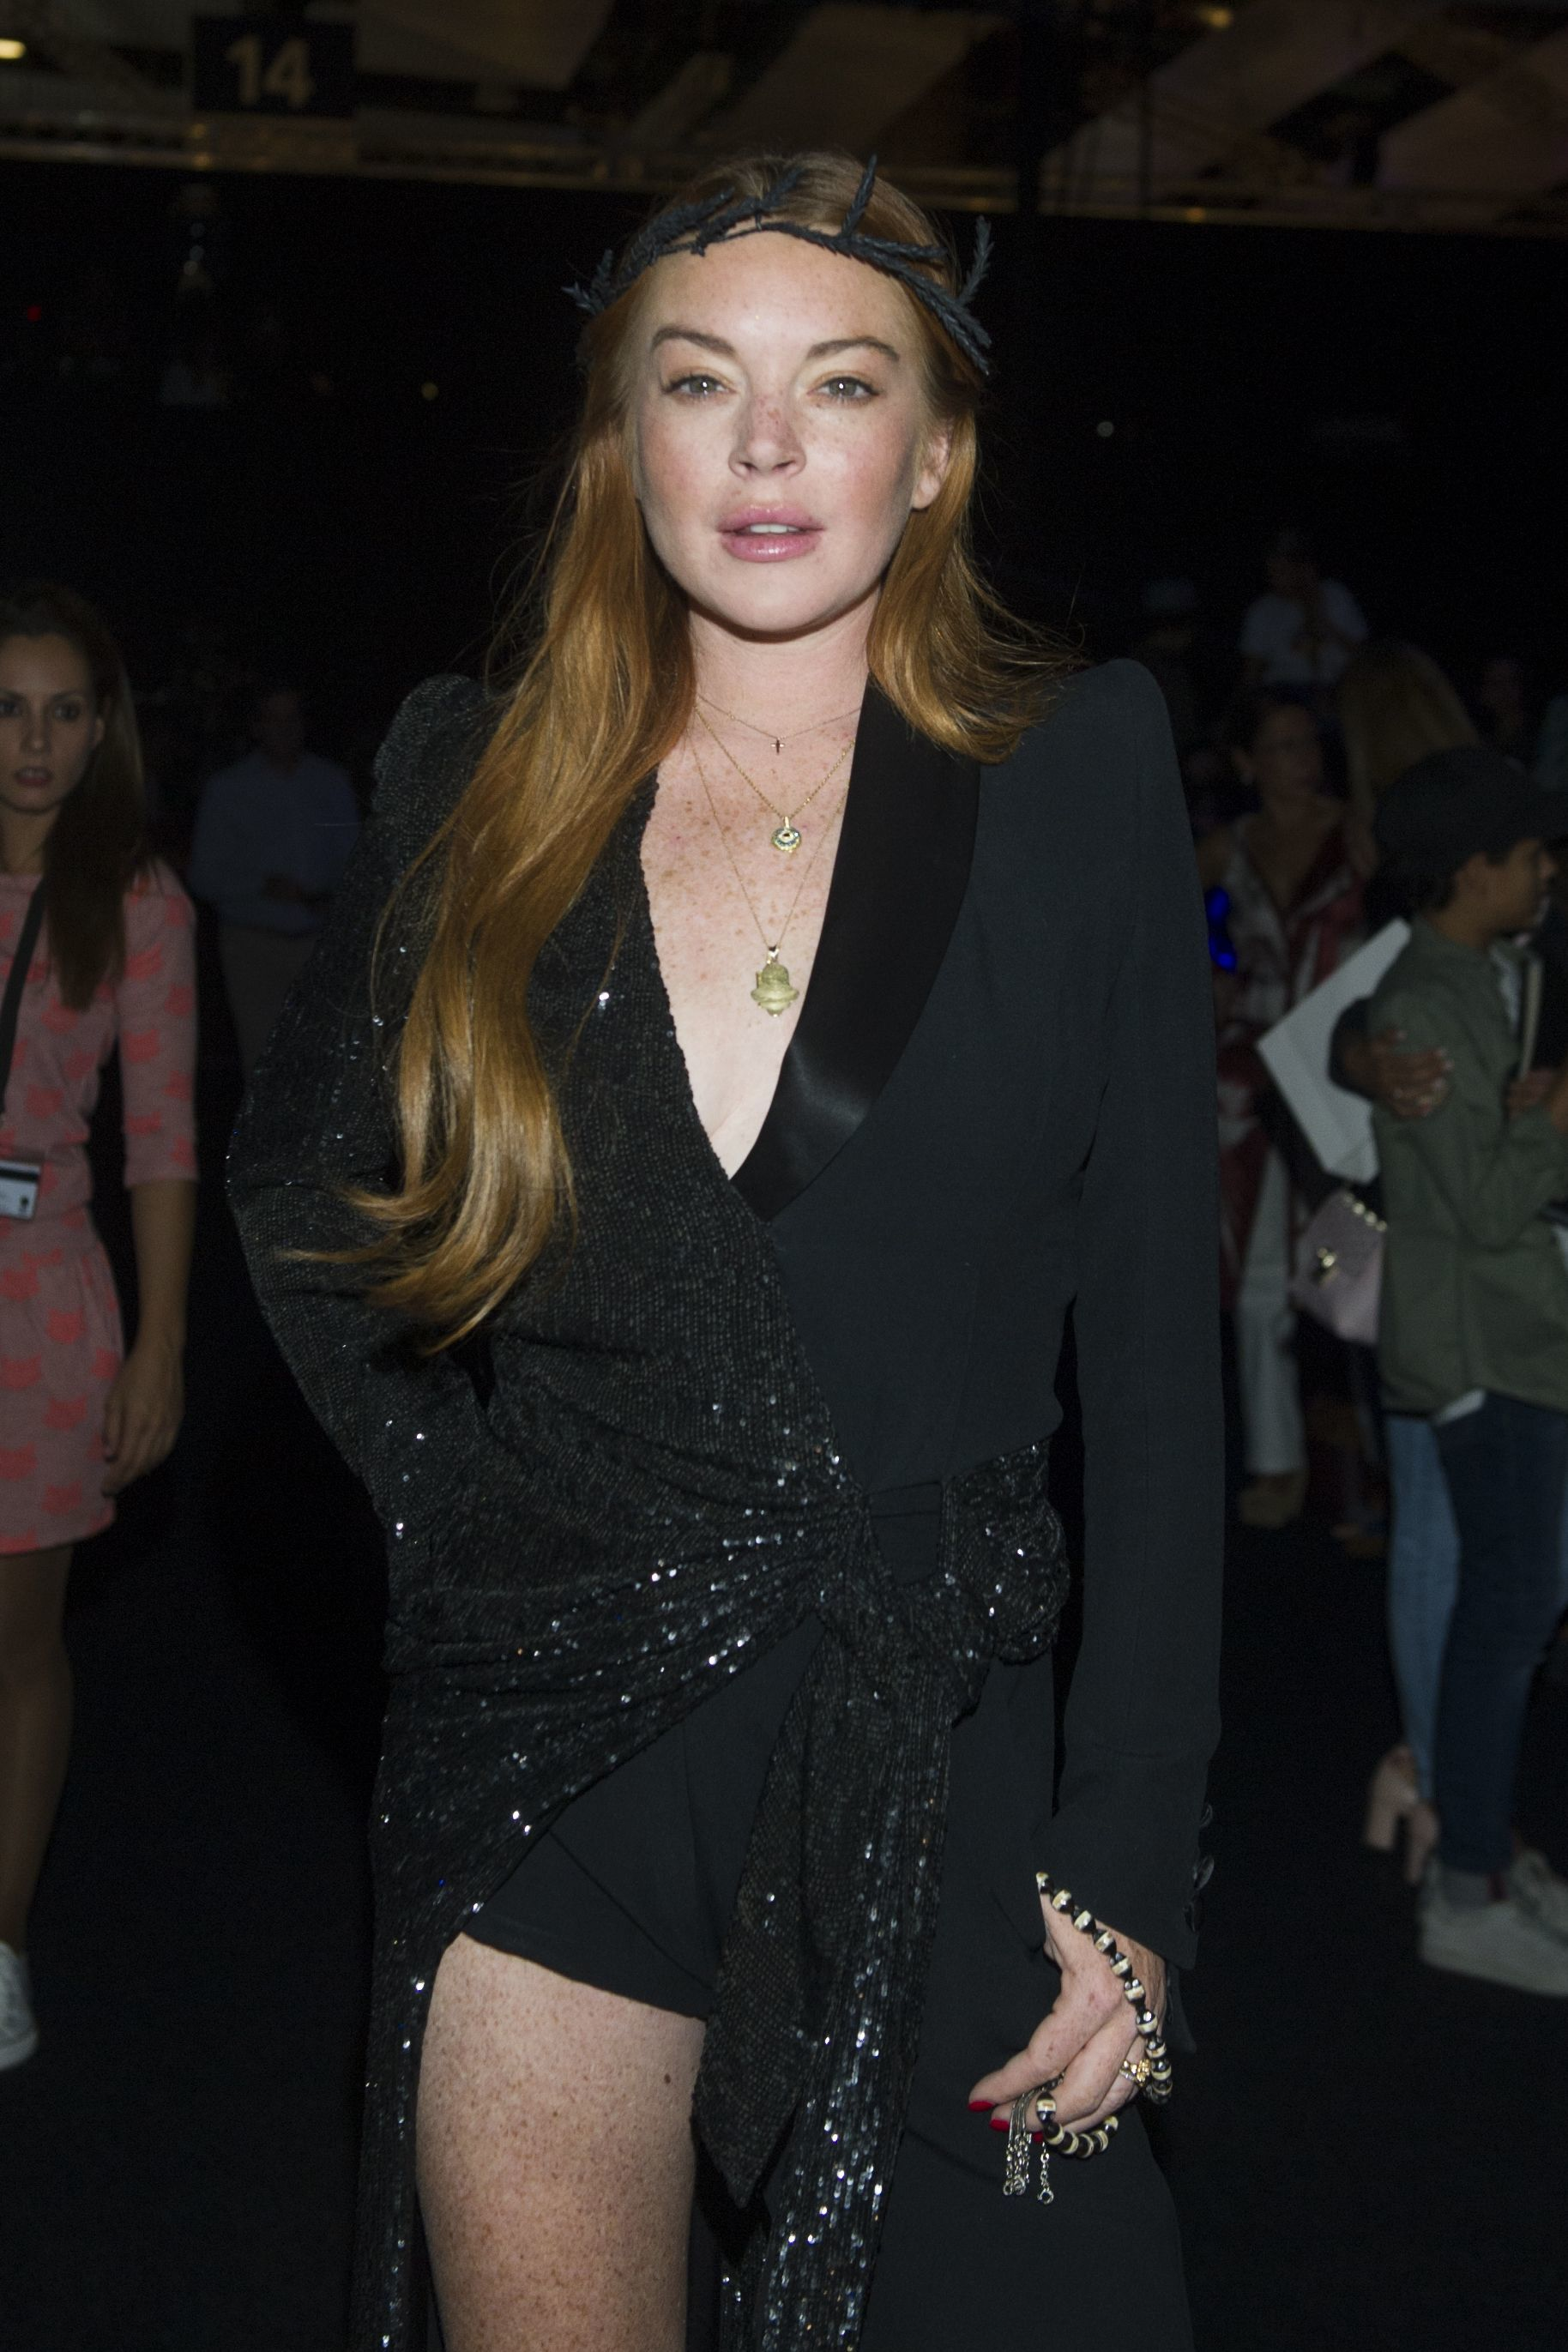 Lindsay Lohan attends the Malne show for Spring/Summer 2018 at Madrid Fashion Week on Sept. 16, 2017.